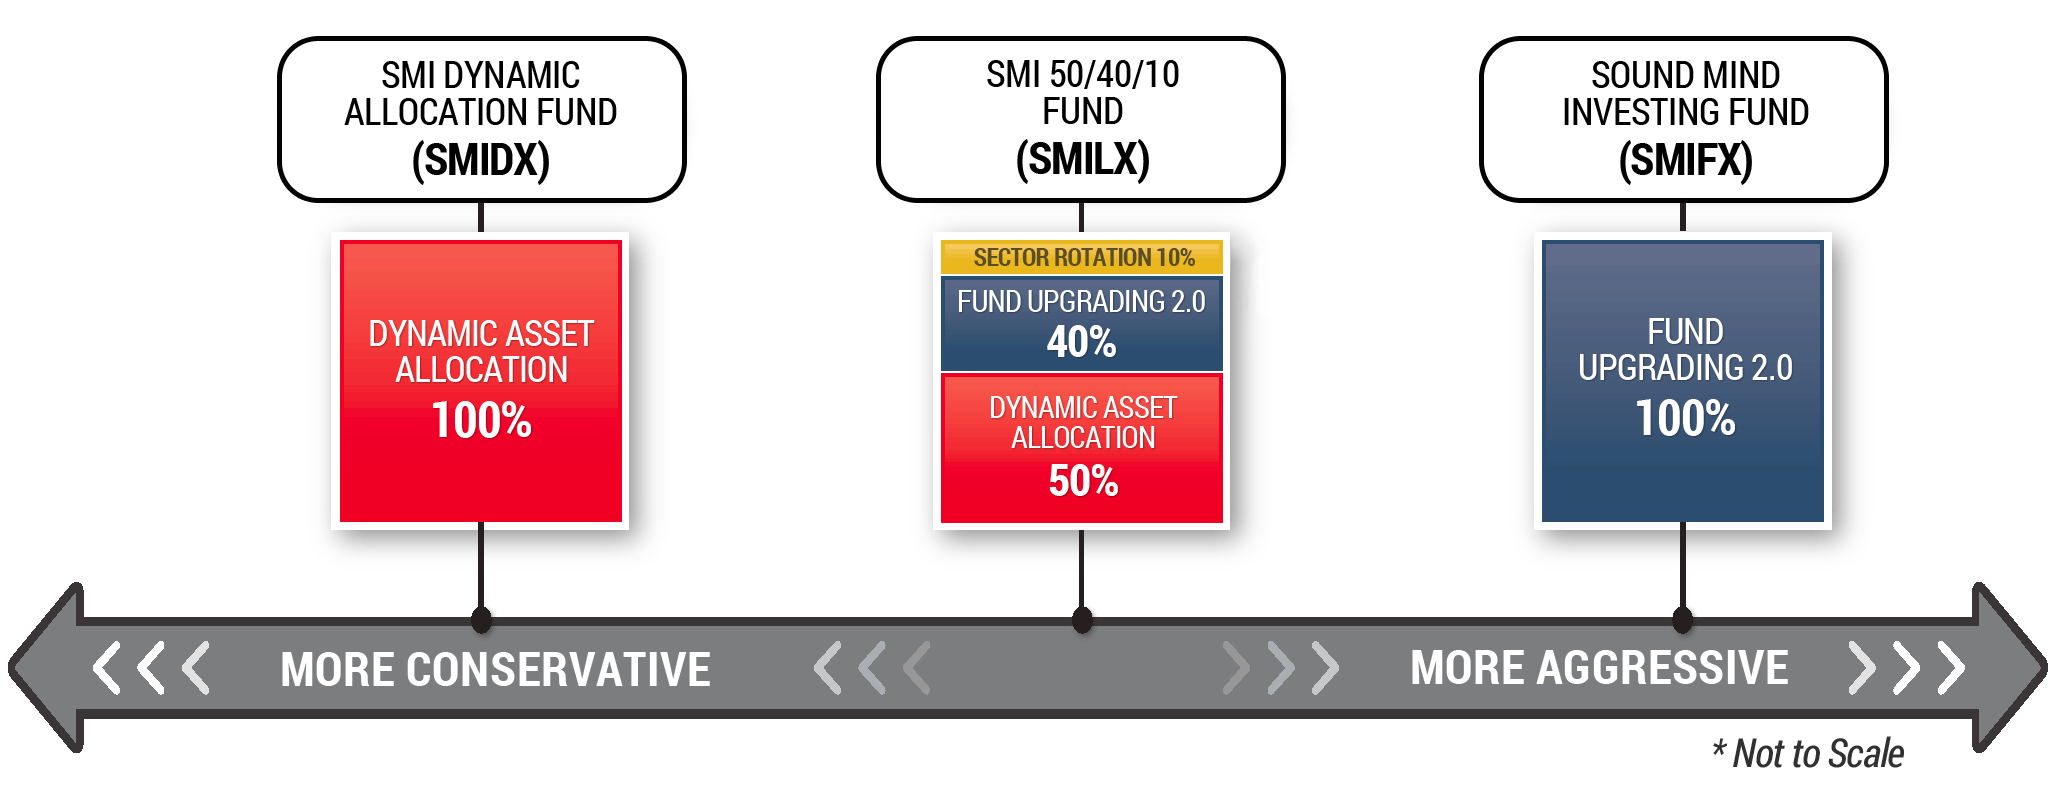 smi funds home